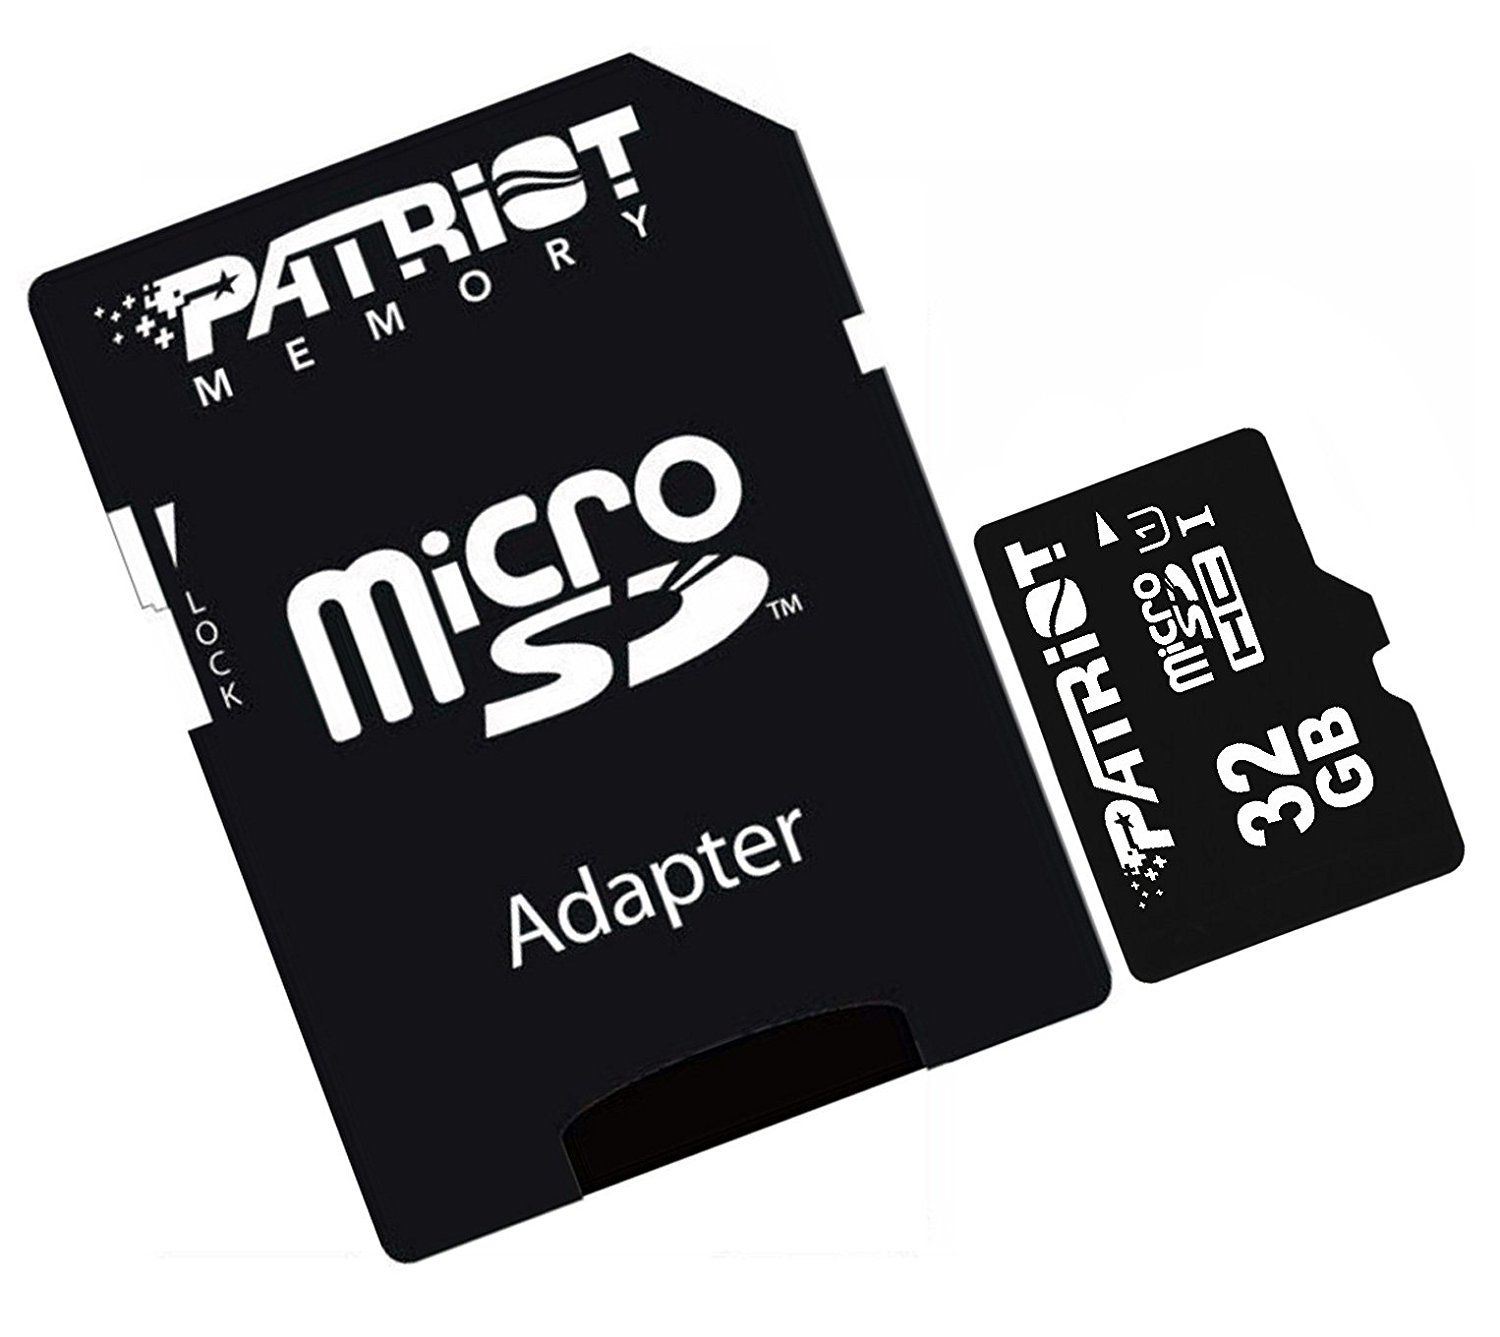 32gb Microsdhc Memory Card For Metropcs Lg Spirit 4g Ms870 Cellphone Reader Mobile Mate Microsd Samsung Galaxy Smartphone With Free Usb Sdhc 16 G Gb Gig Continue To The Product At Image Link